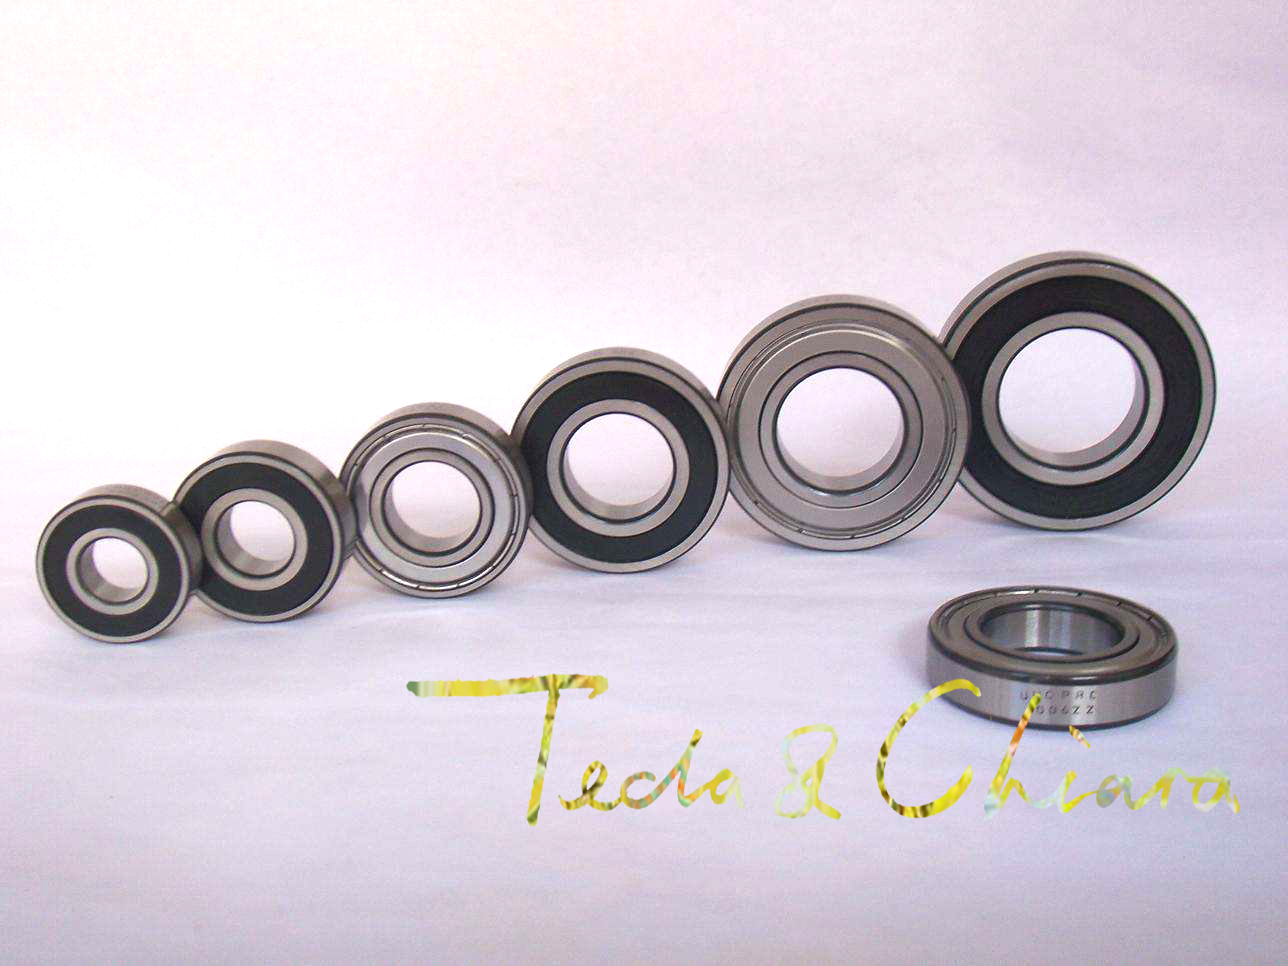 6301 6301ZZ 6301RS 6301-2Z 6301Z 6301-2RS ZZ RS RZ 2RZ Deep Groove Ball Bearings 12 x 37 x 12mm High Quality free shipping 25x47x12mm deep groove ball bearings 6005 zz 2z 6005zz bearing 6005zz 6005 2rs